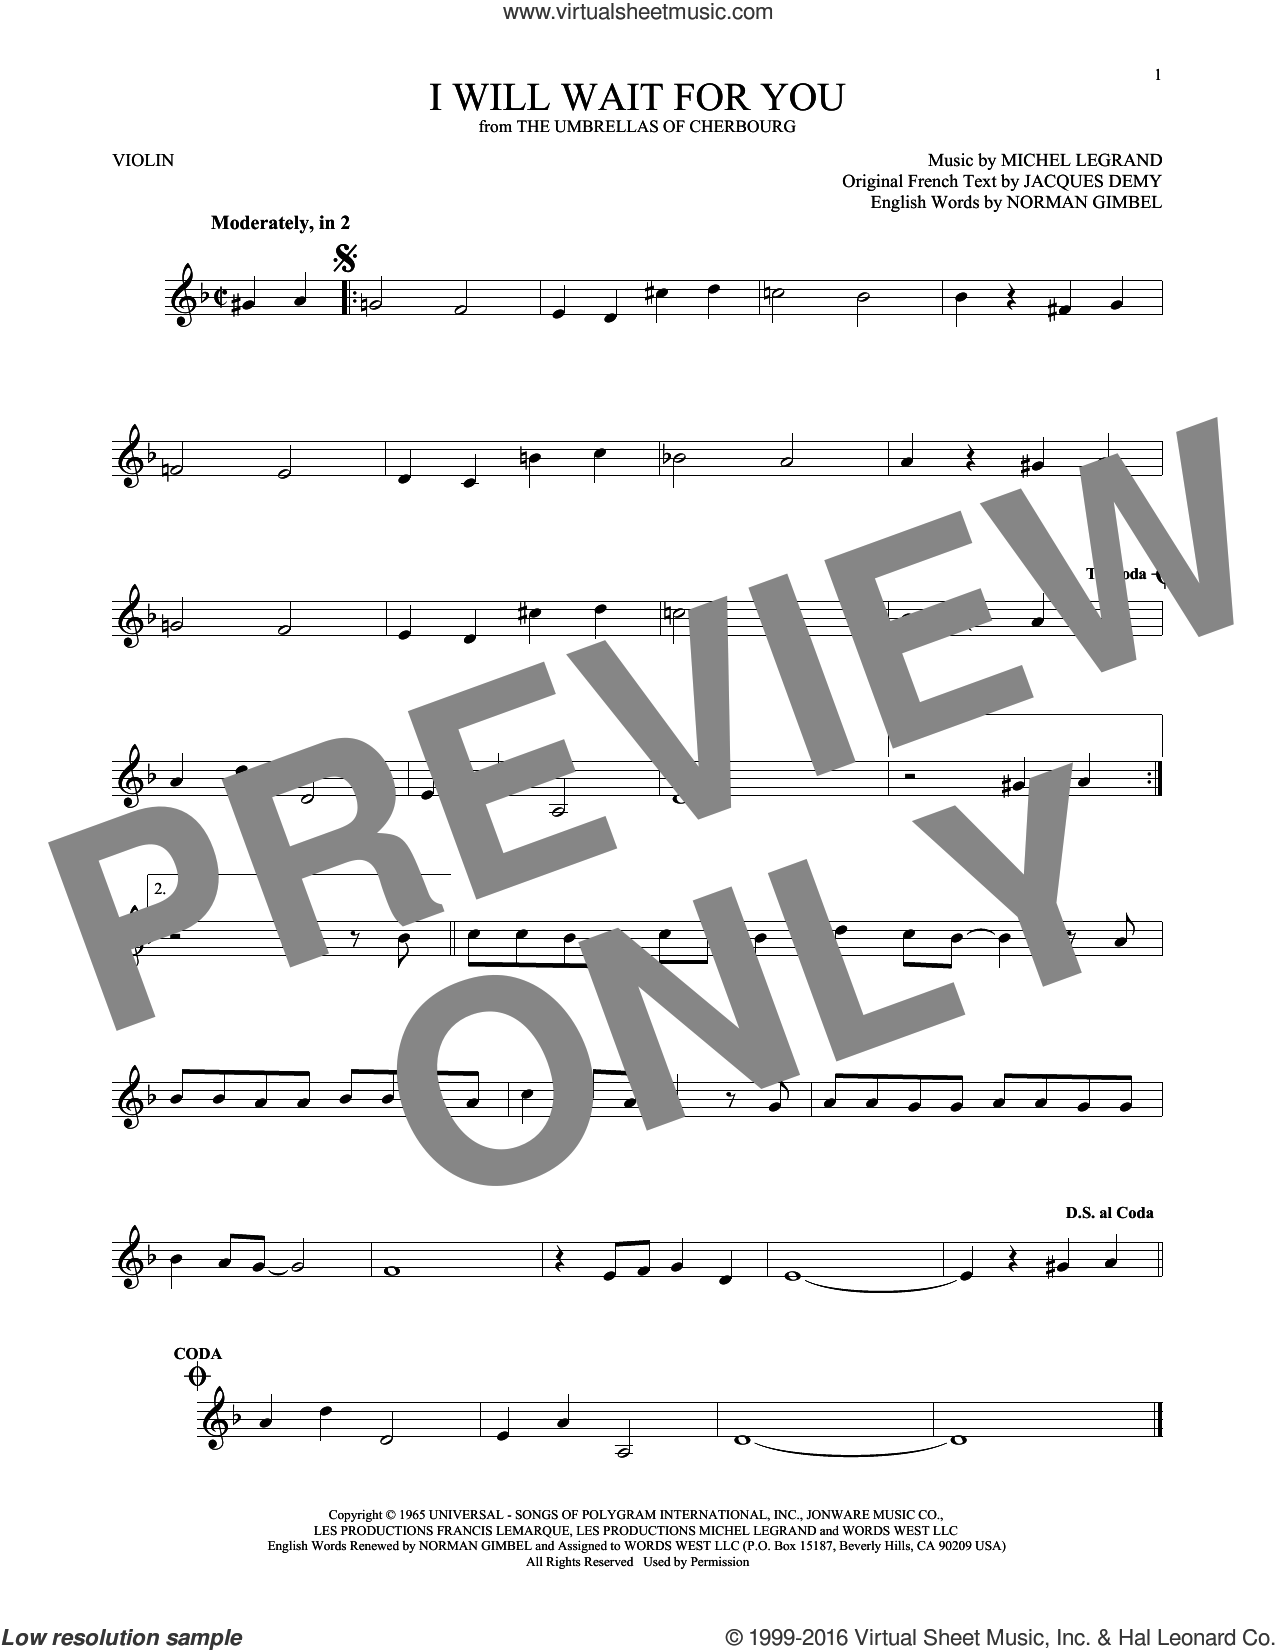 I Will Wait For You sheet music for violin solo by Norman Gimbel, Jacques Demy and Michel Legrand. Score Image Preview.